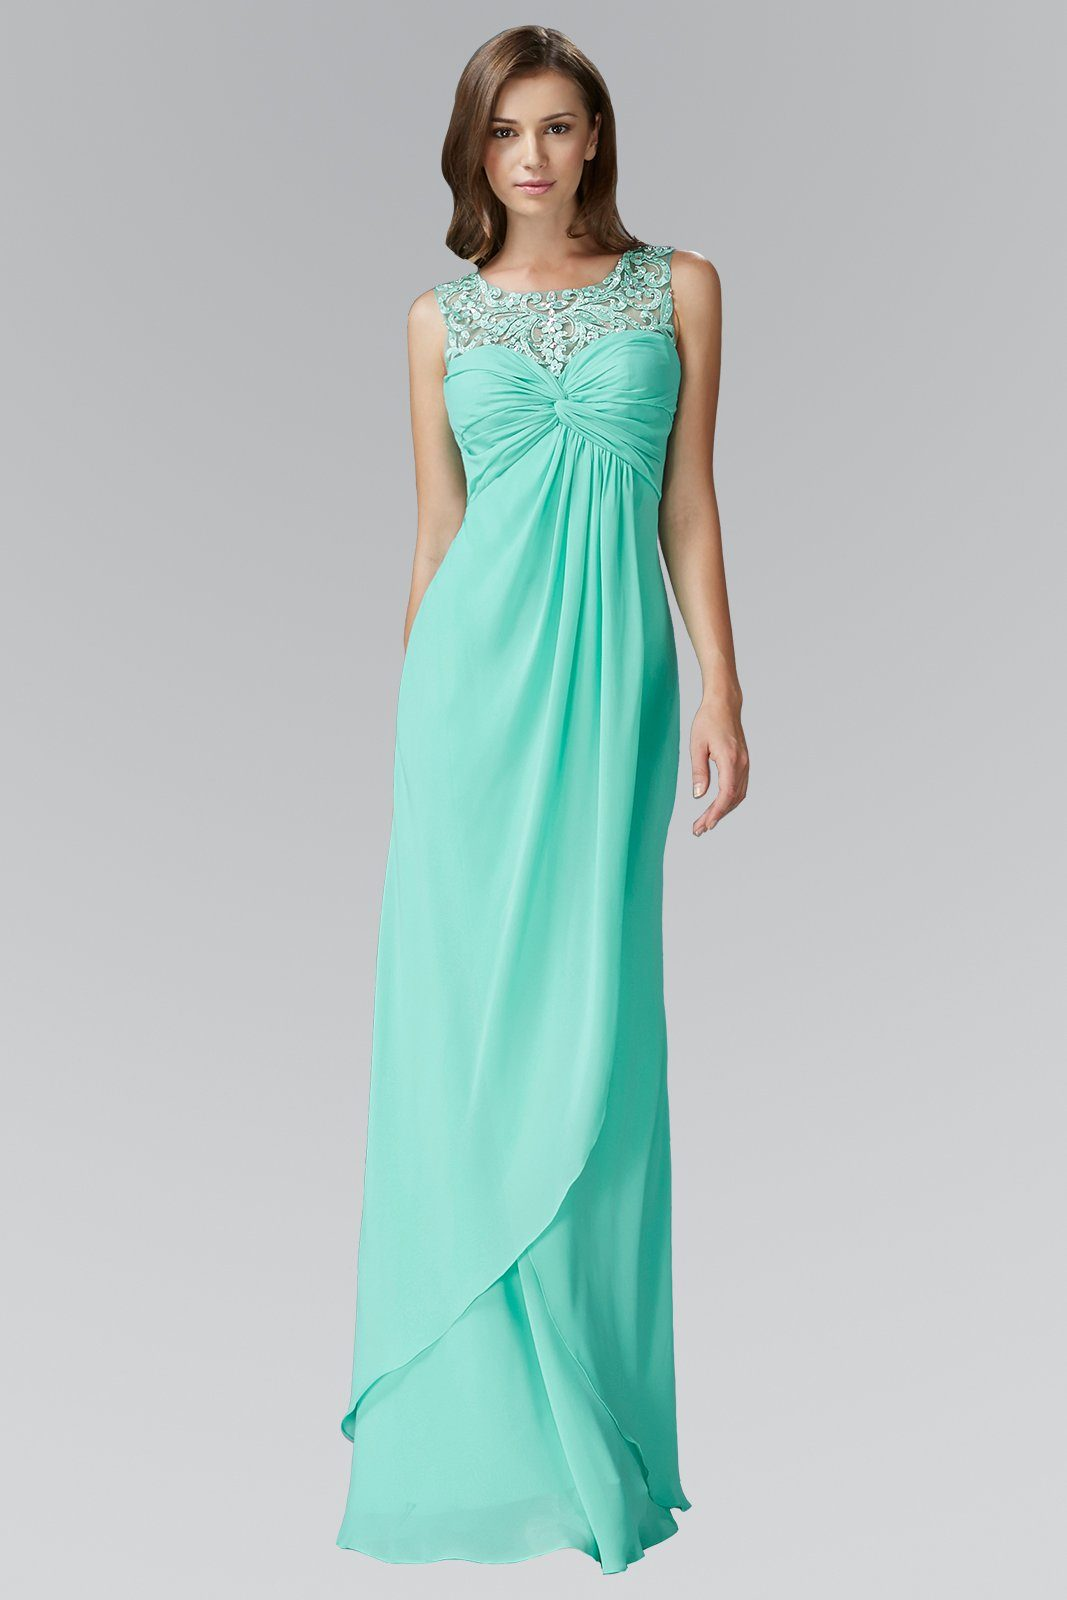 Tiffany Blue Dresses | Chiffon Bridesmaid Dress – Simply Fab Dress